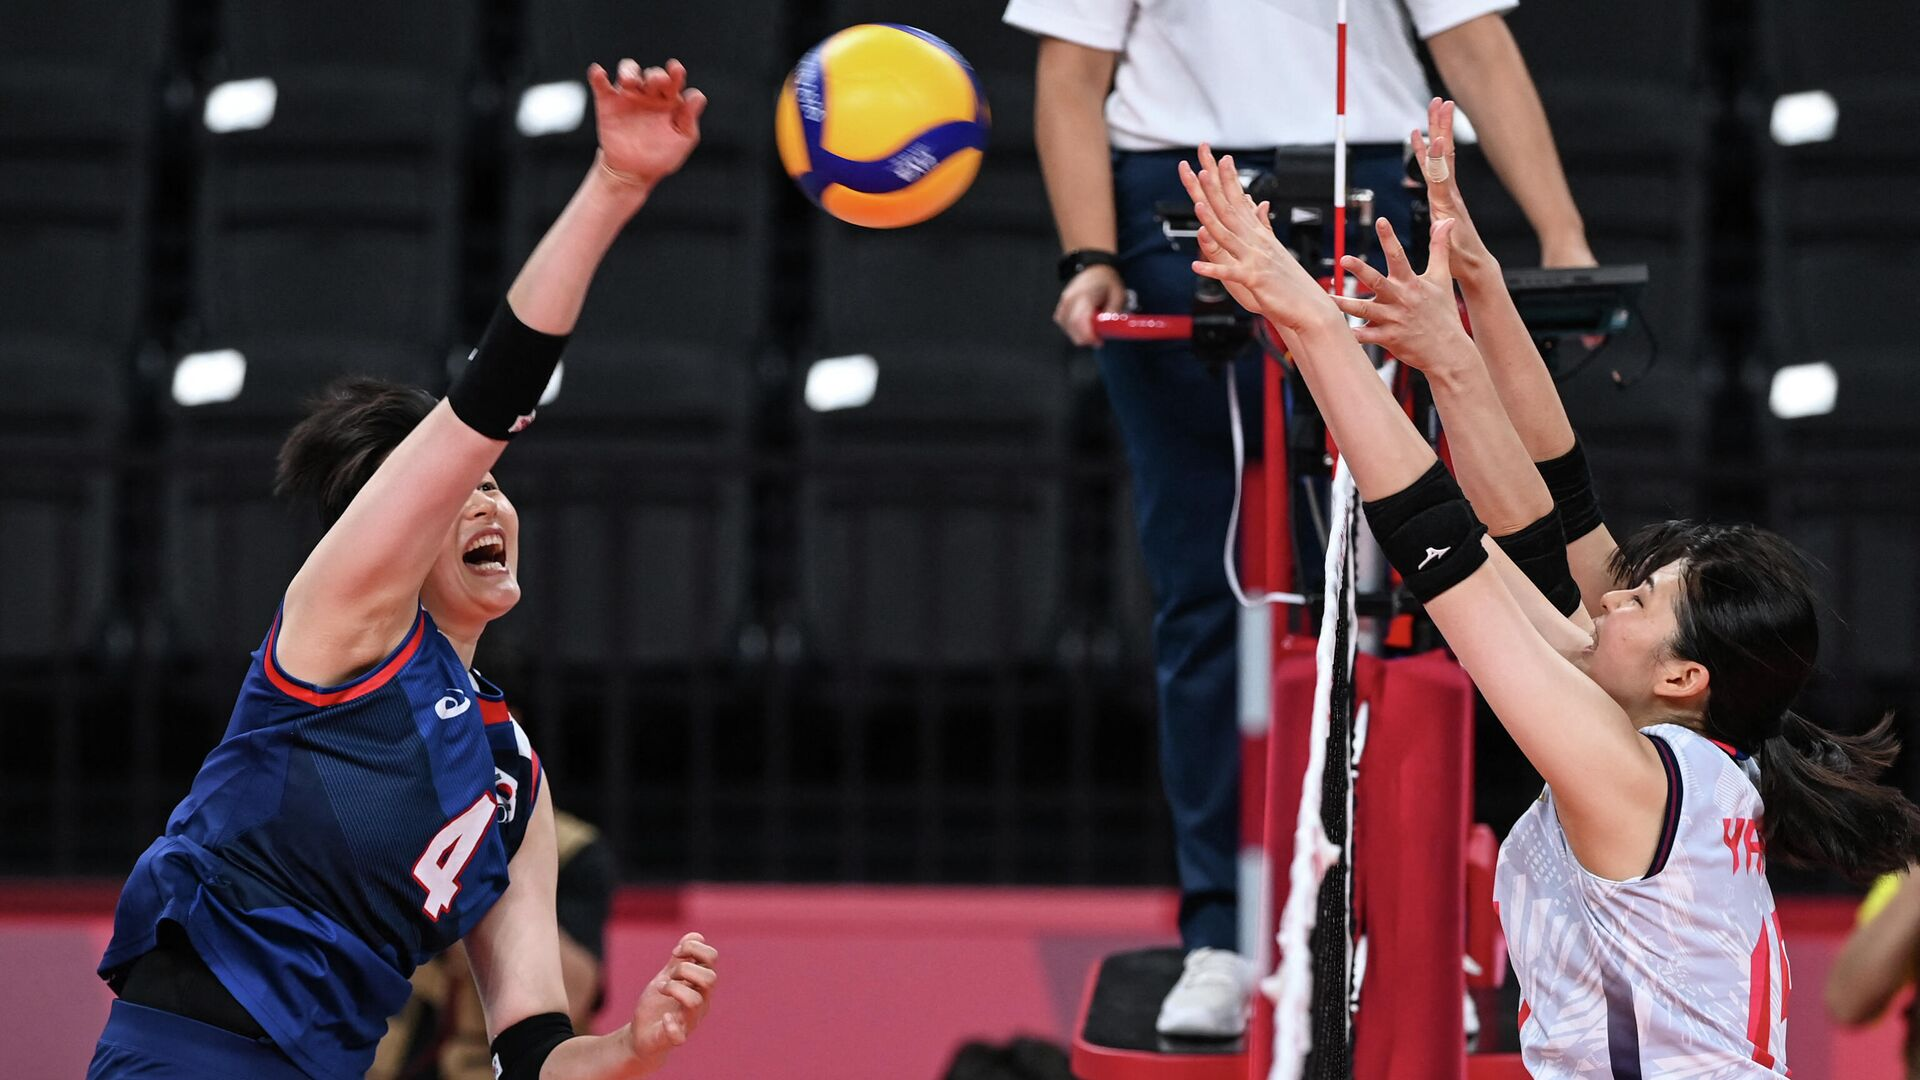 South Korea's Kim Hee-jin hits the ball in the women's preliminary round pool A volleyball match between Japan and South Korea during the Tokyo 2020 Olympic Games at Ariake Arena in Tokyo on July 31, 2021. (Photo by JUNG Yeon-je / AFP) - РИА Новости, 1920, 31.07.2021